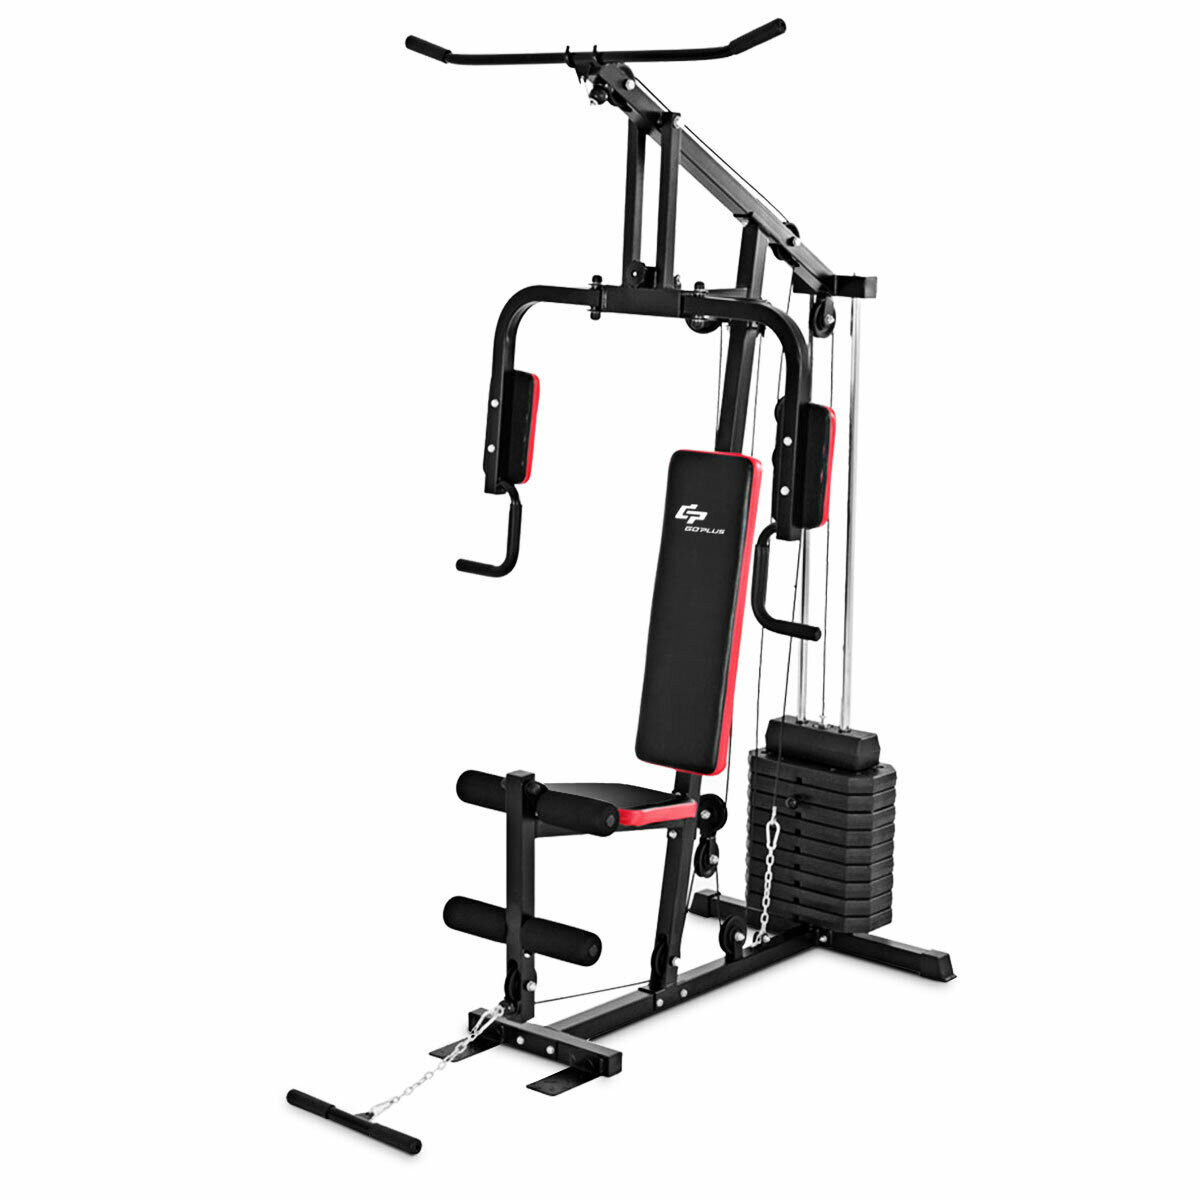 Multifunction Cross Trainer Workout Machine Fitness ...